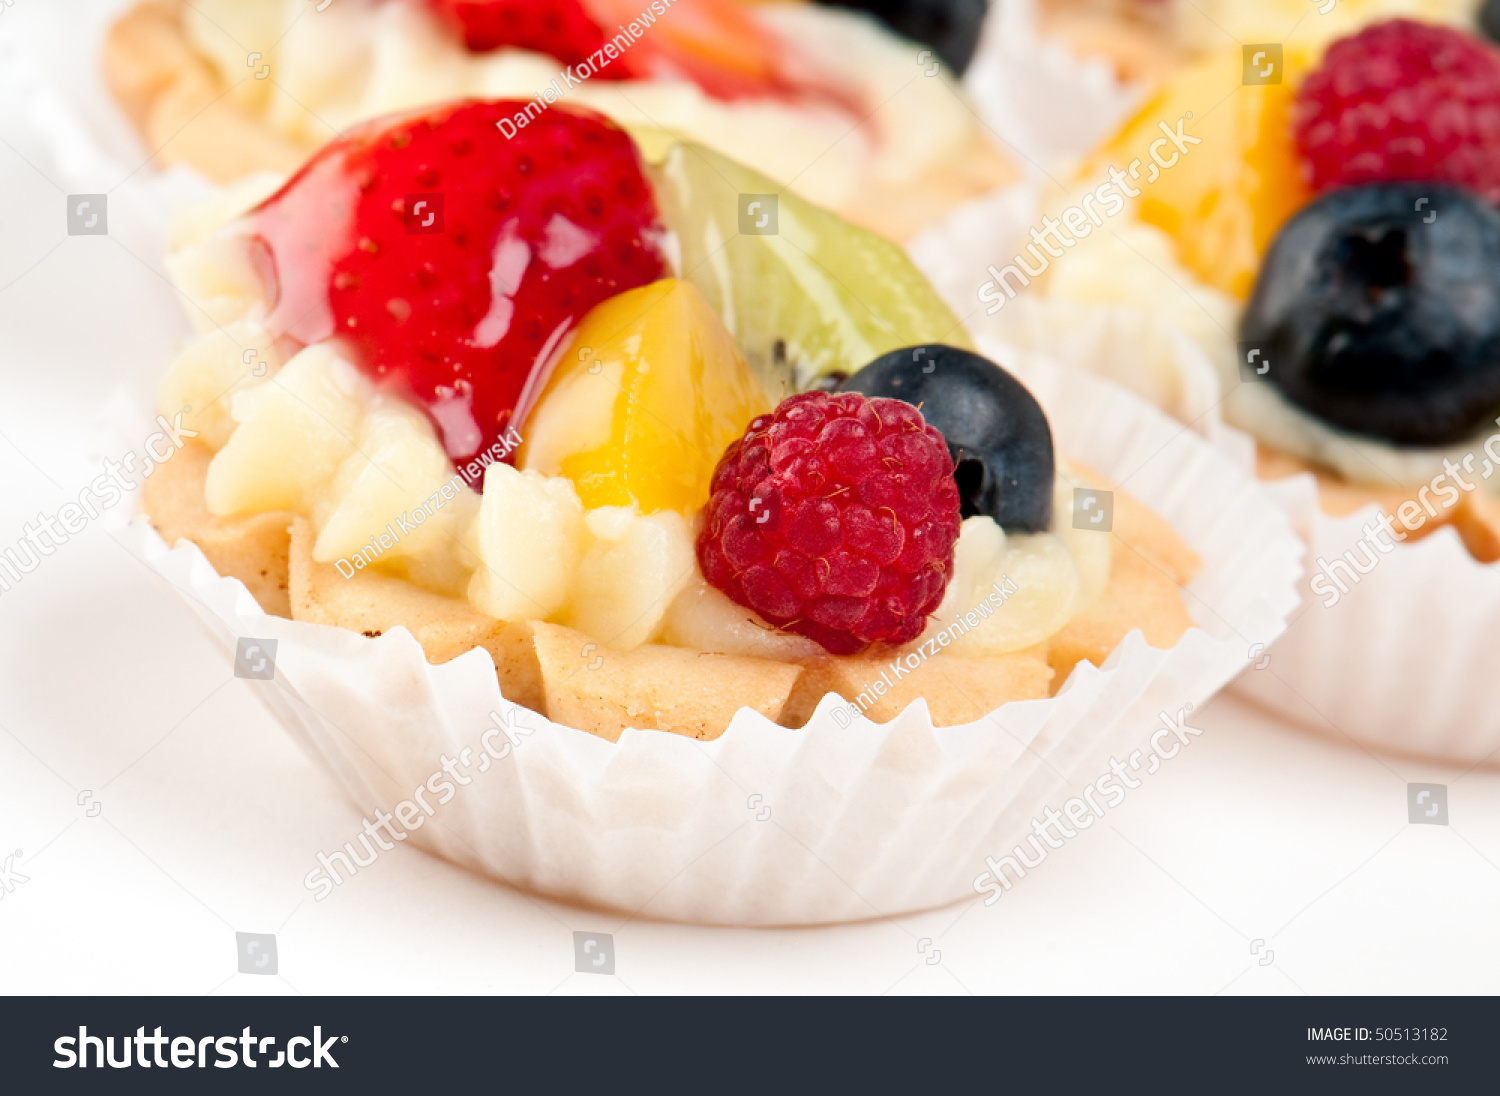 Dessert made of fruit over a voulavent pastry volauvent for Canape meaning in english